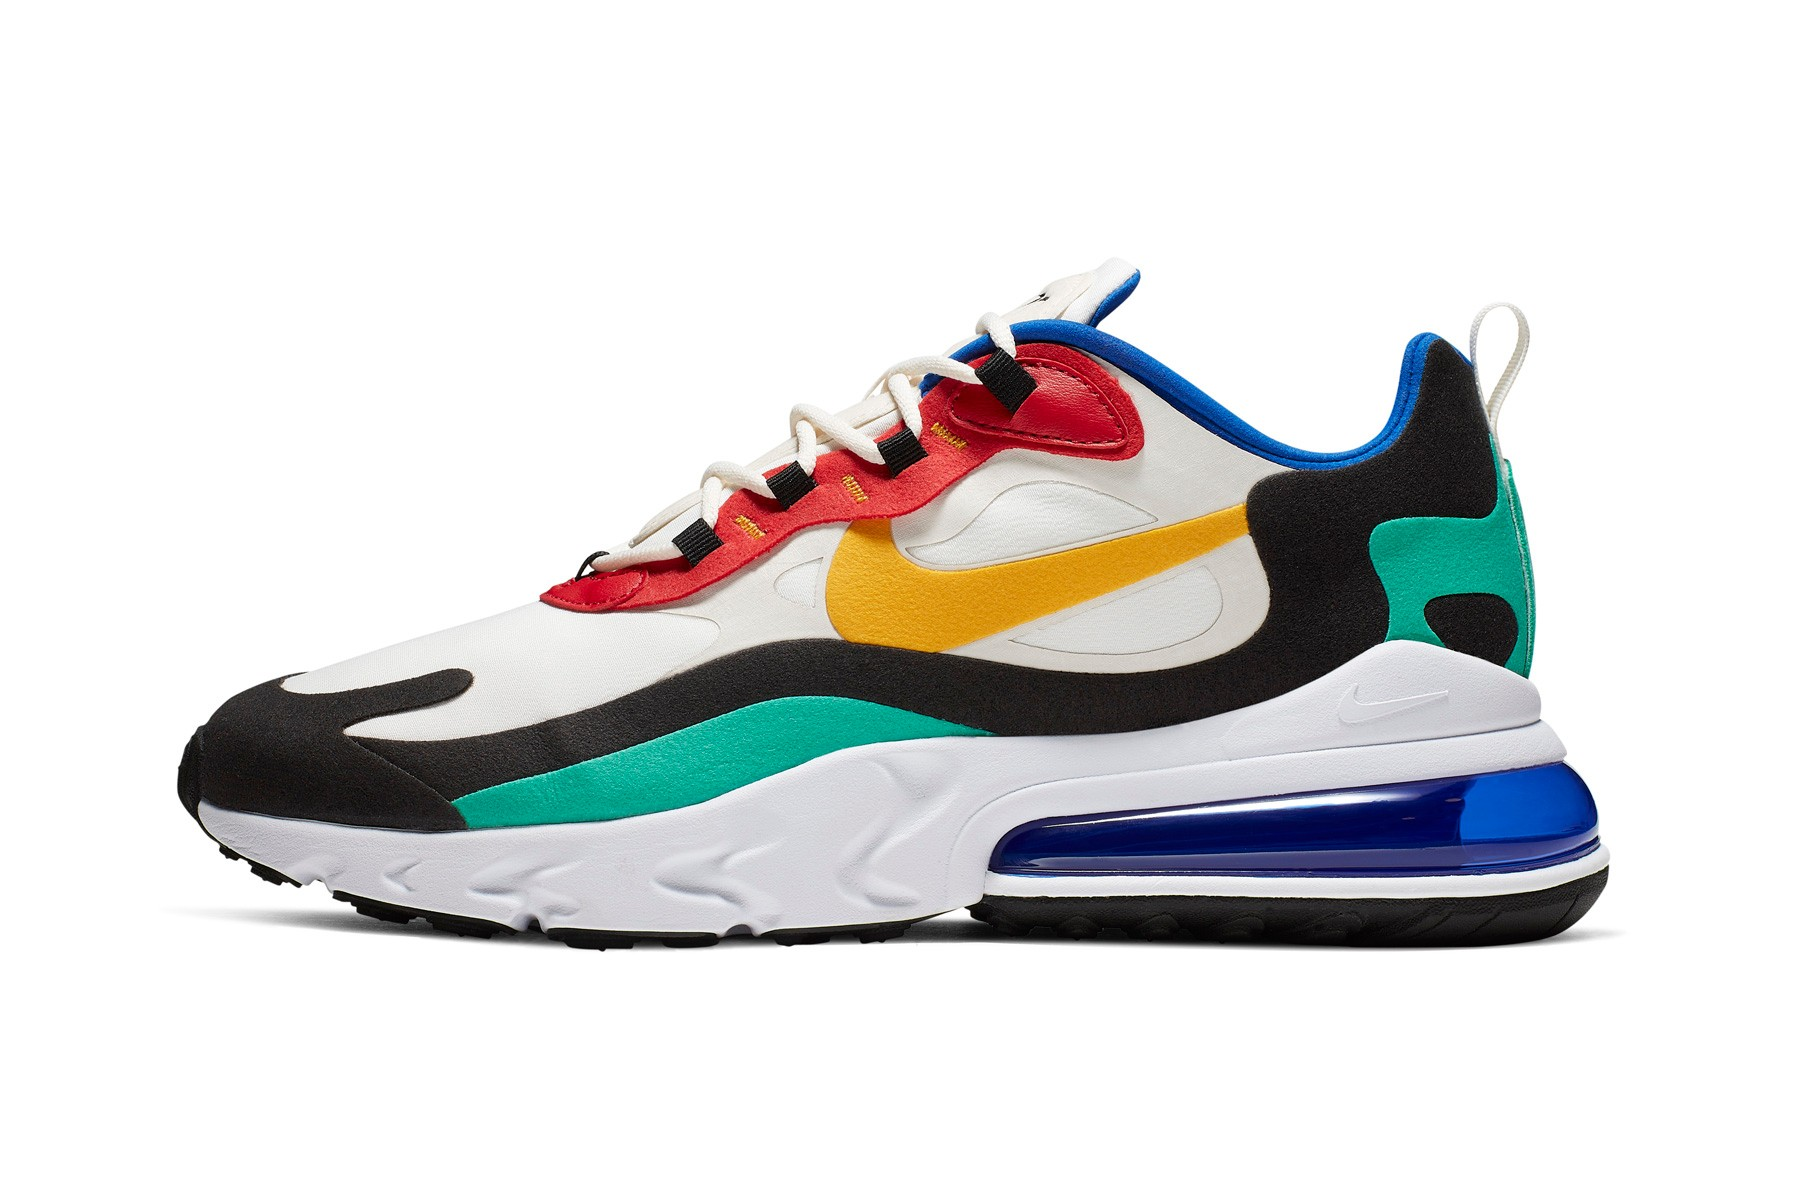 check out 9d954 52ef3 Where To Buy The Nike Air Max 270 React And Other Dope Shoes ...